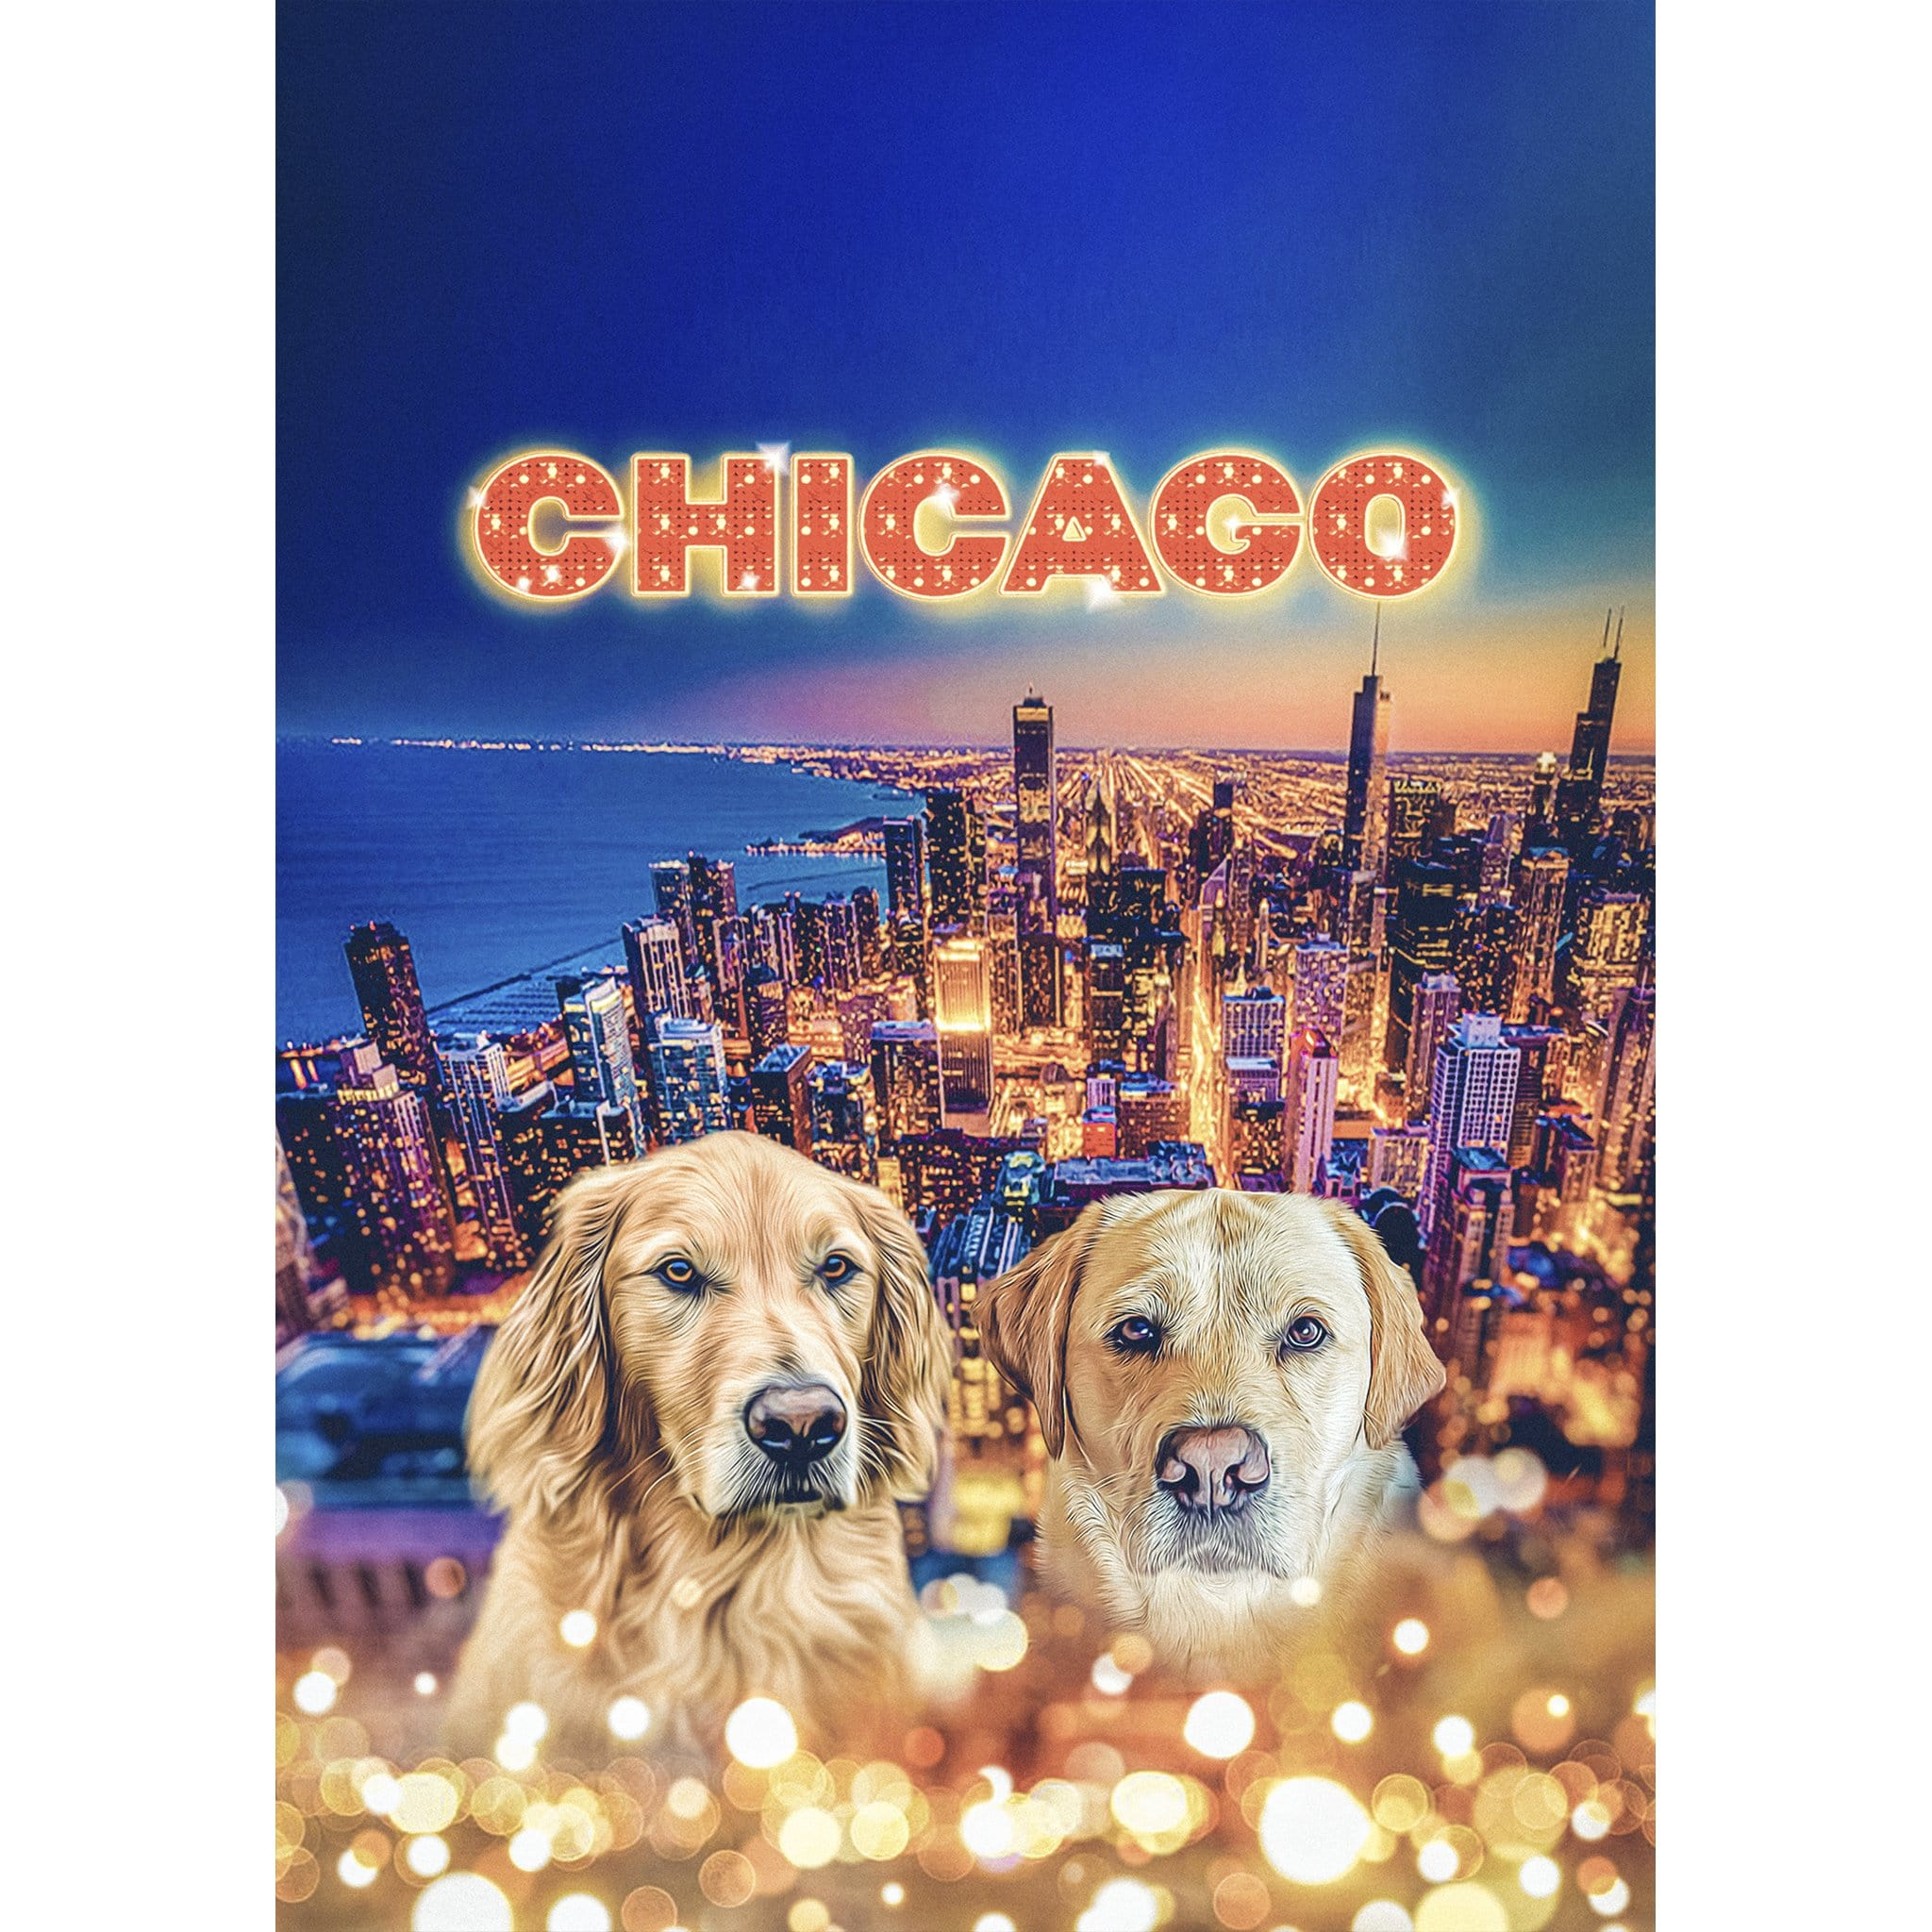 'Doggos Of Chicago' 2 Pet Digital Portrait